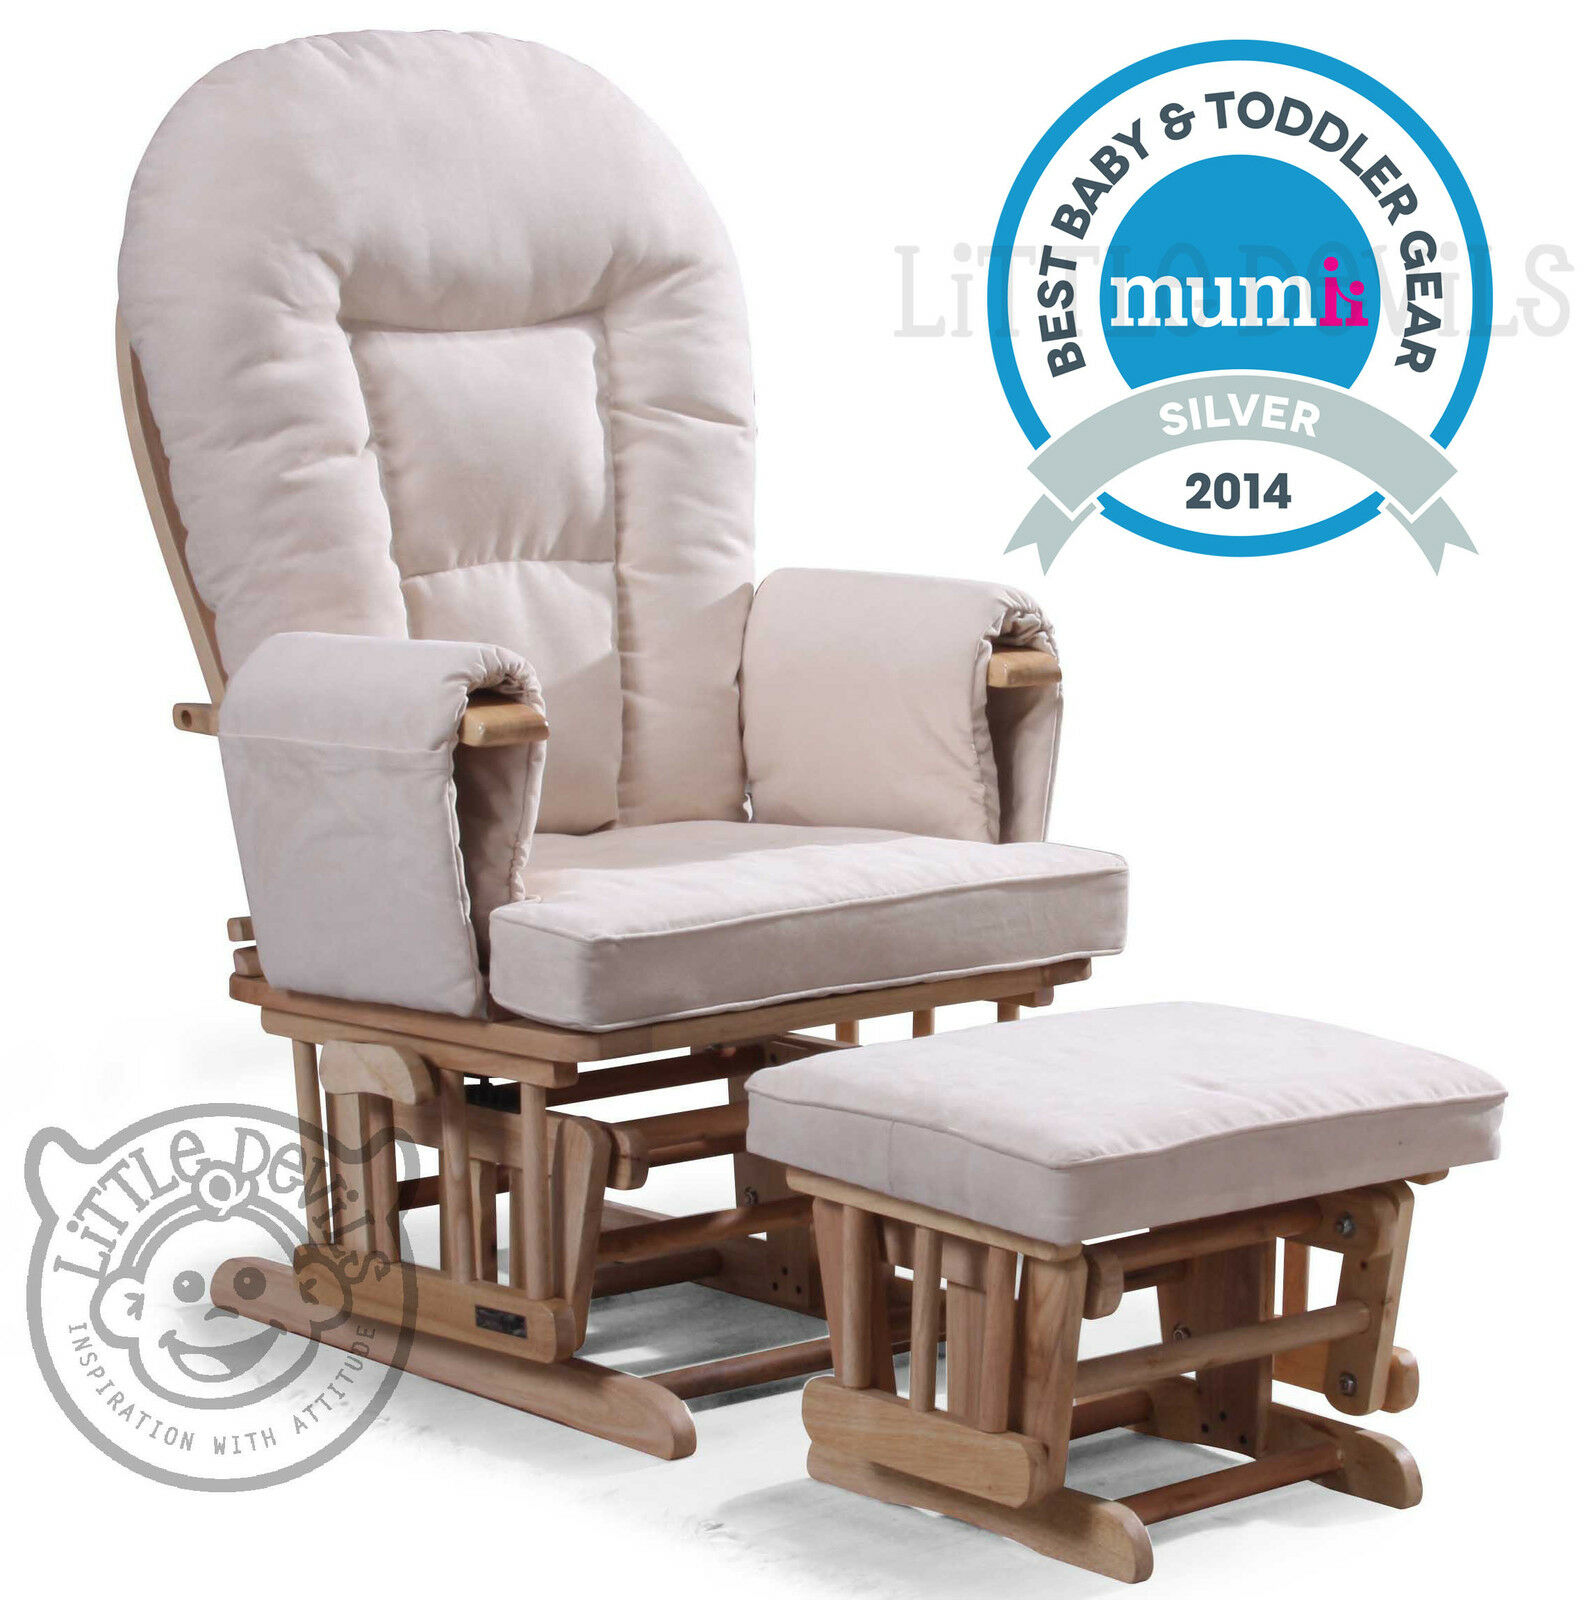 maternity rocking chair white wooden chairs for weddings cream supremo bambino nursing glider recliner